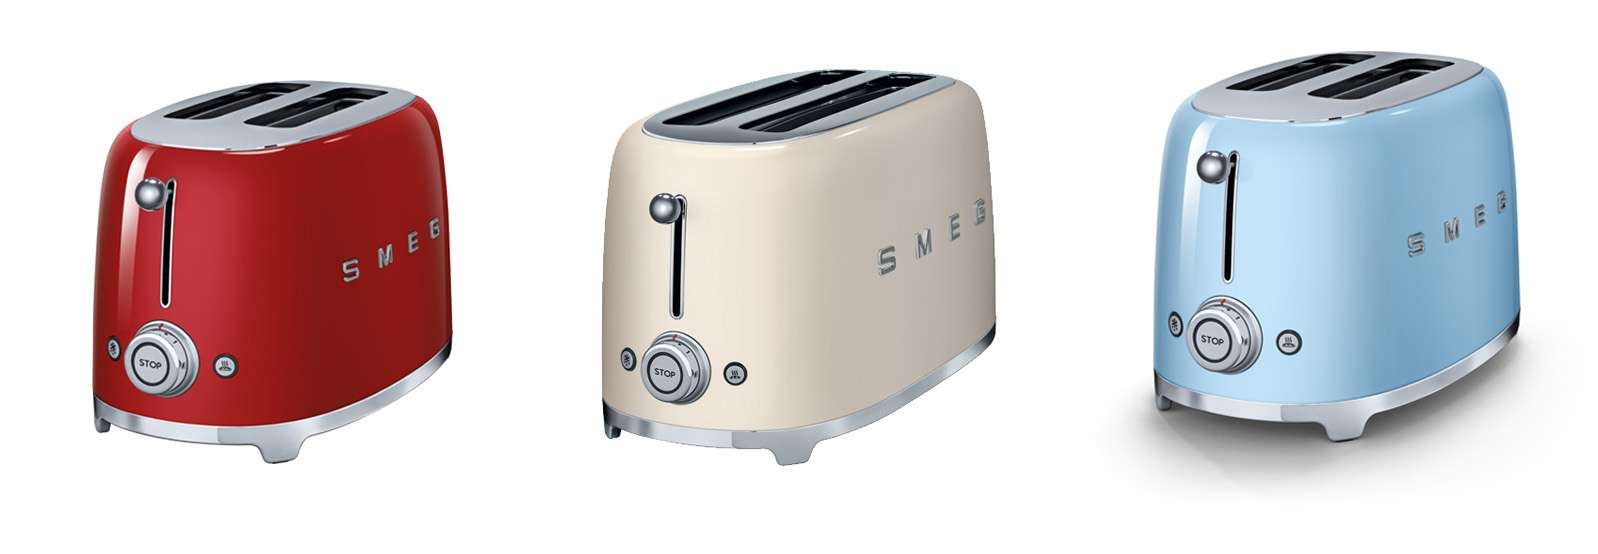 Smeg Retro Style Small Home Appliances Meet New